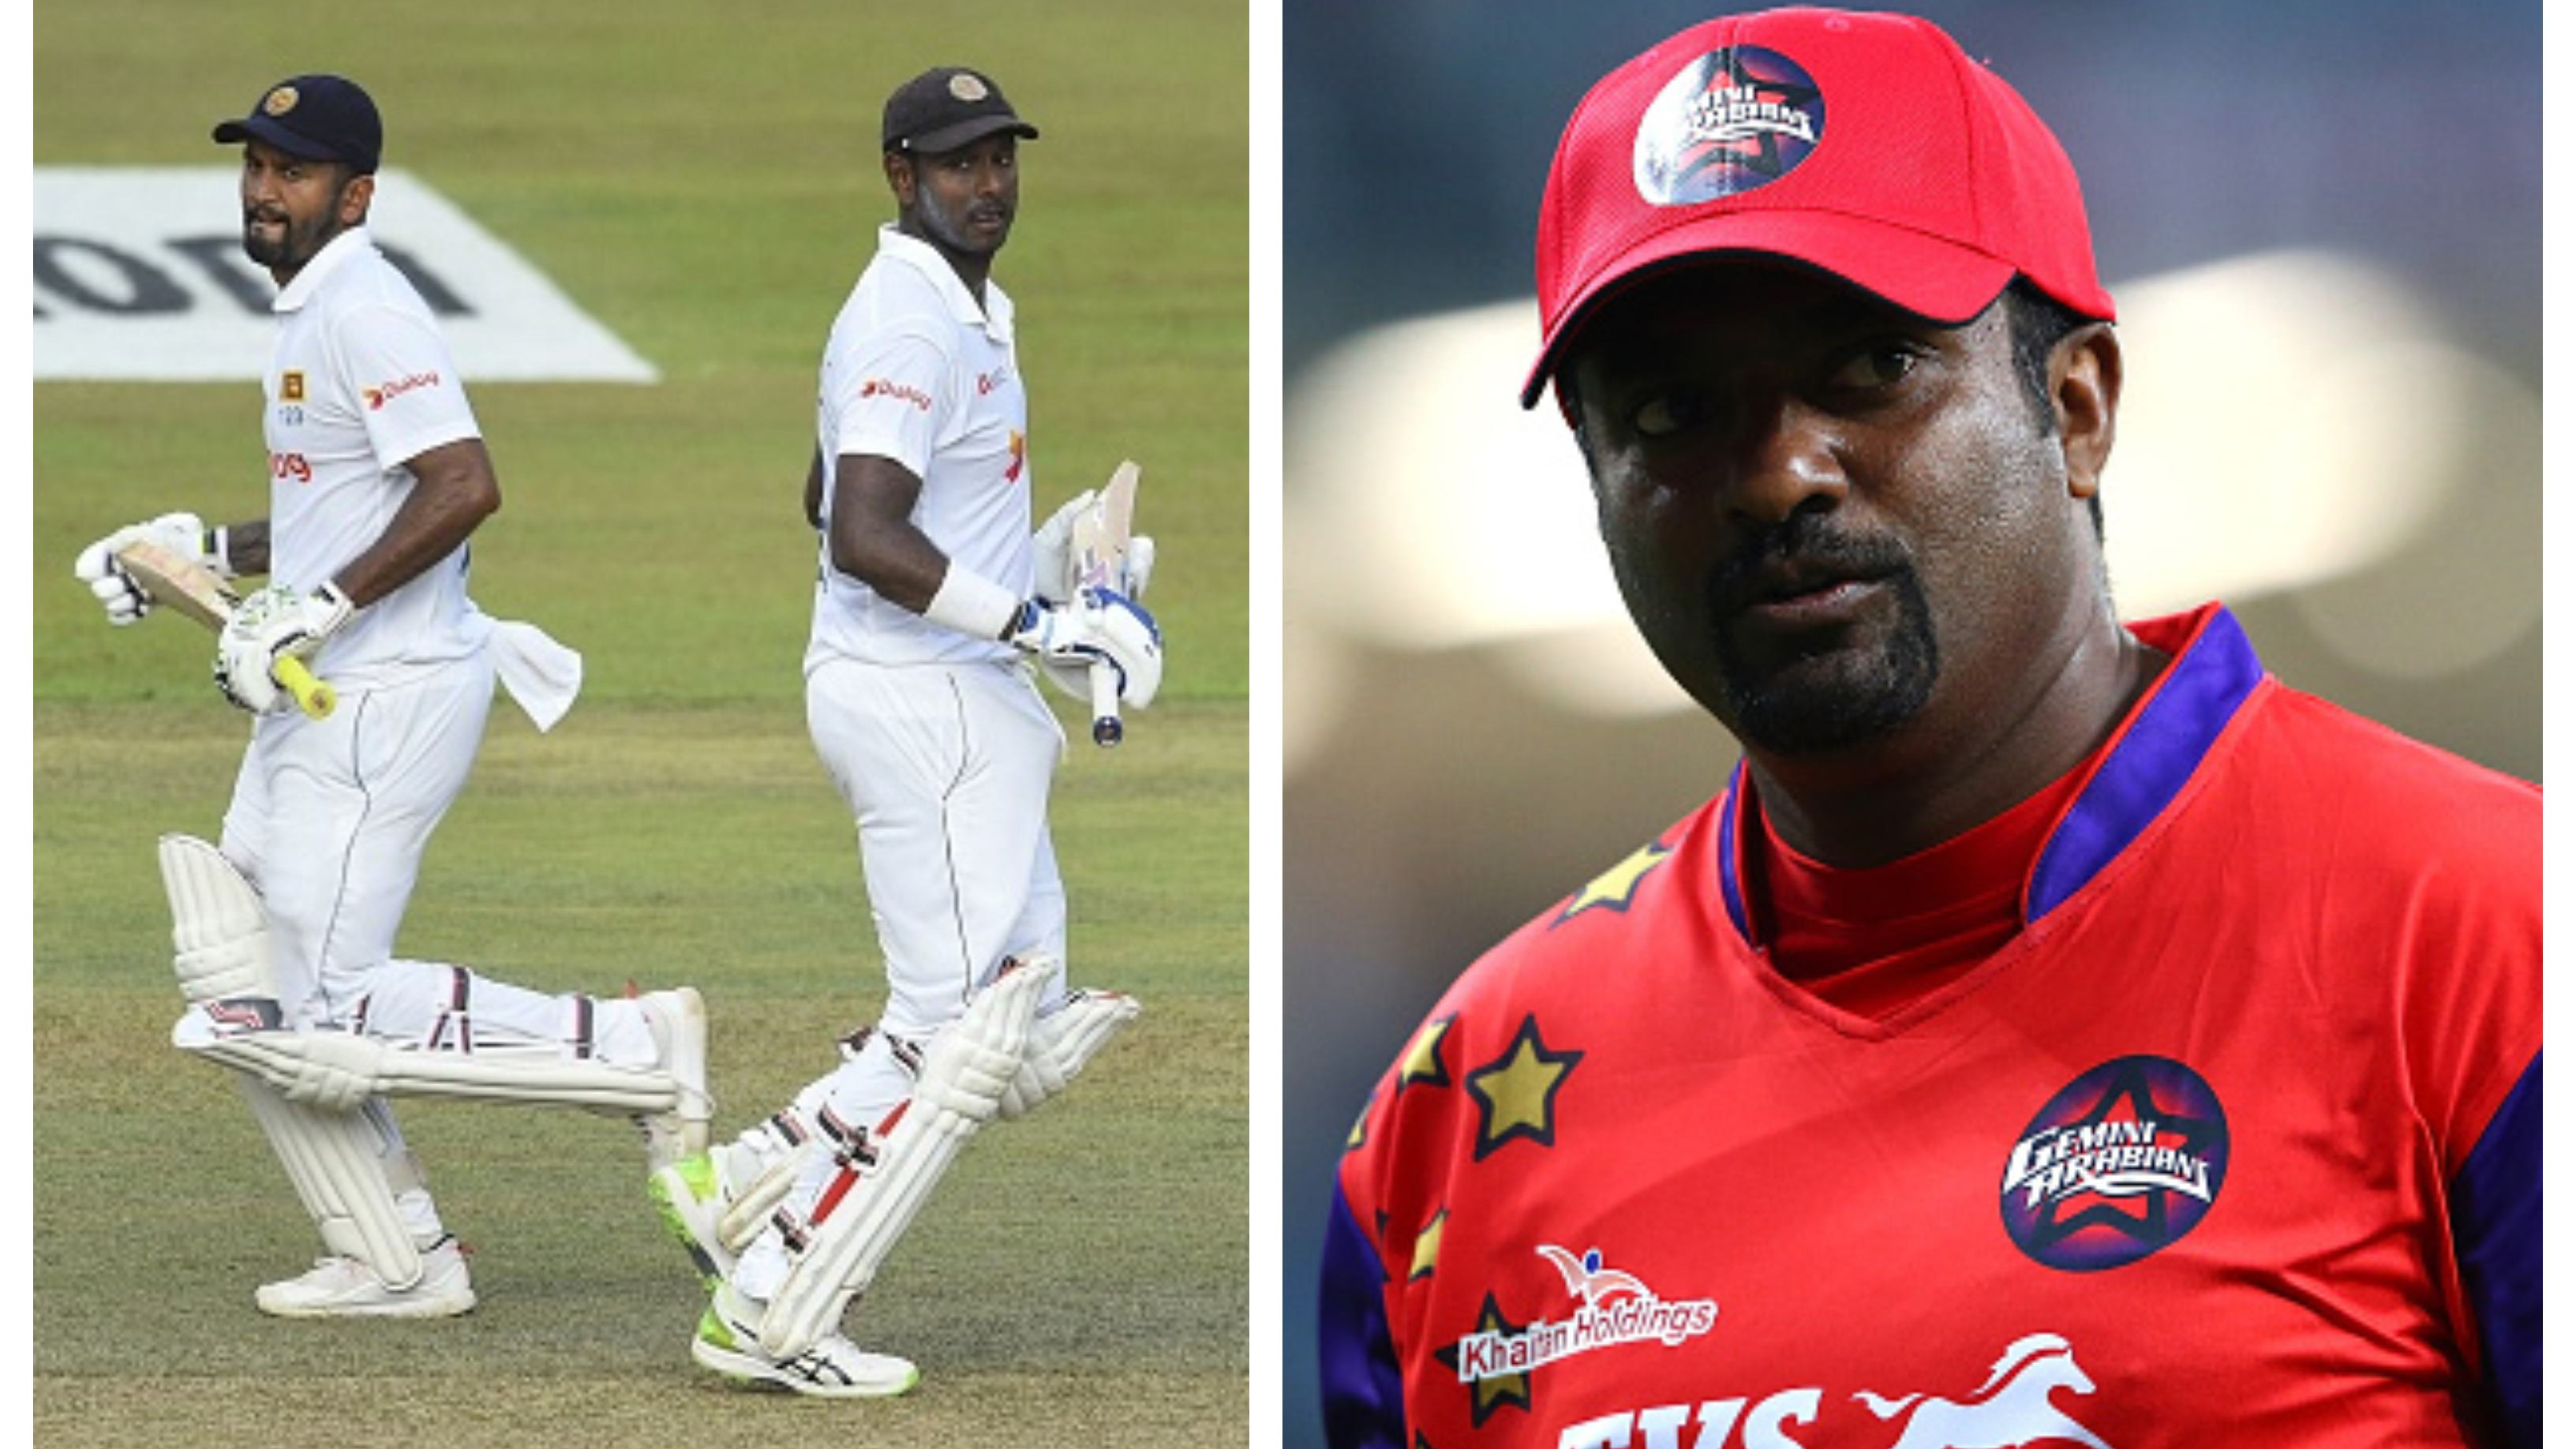 Mathews, Karunaratne write a letter to Muralitharan after spin legend held the duo responsible for contract tussle